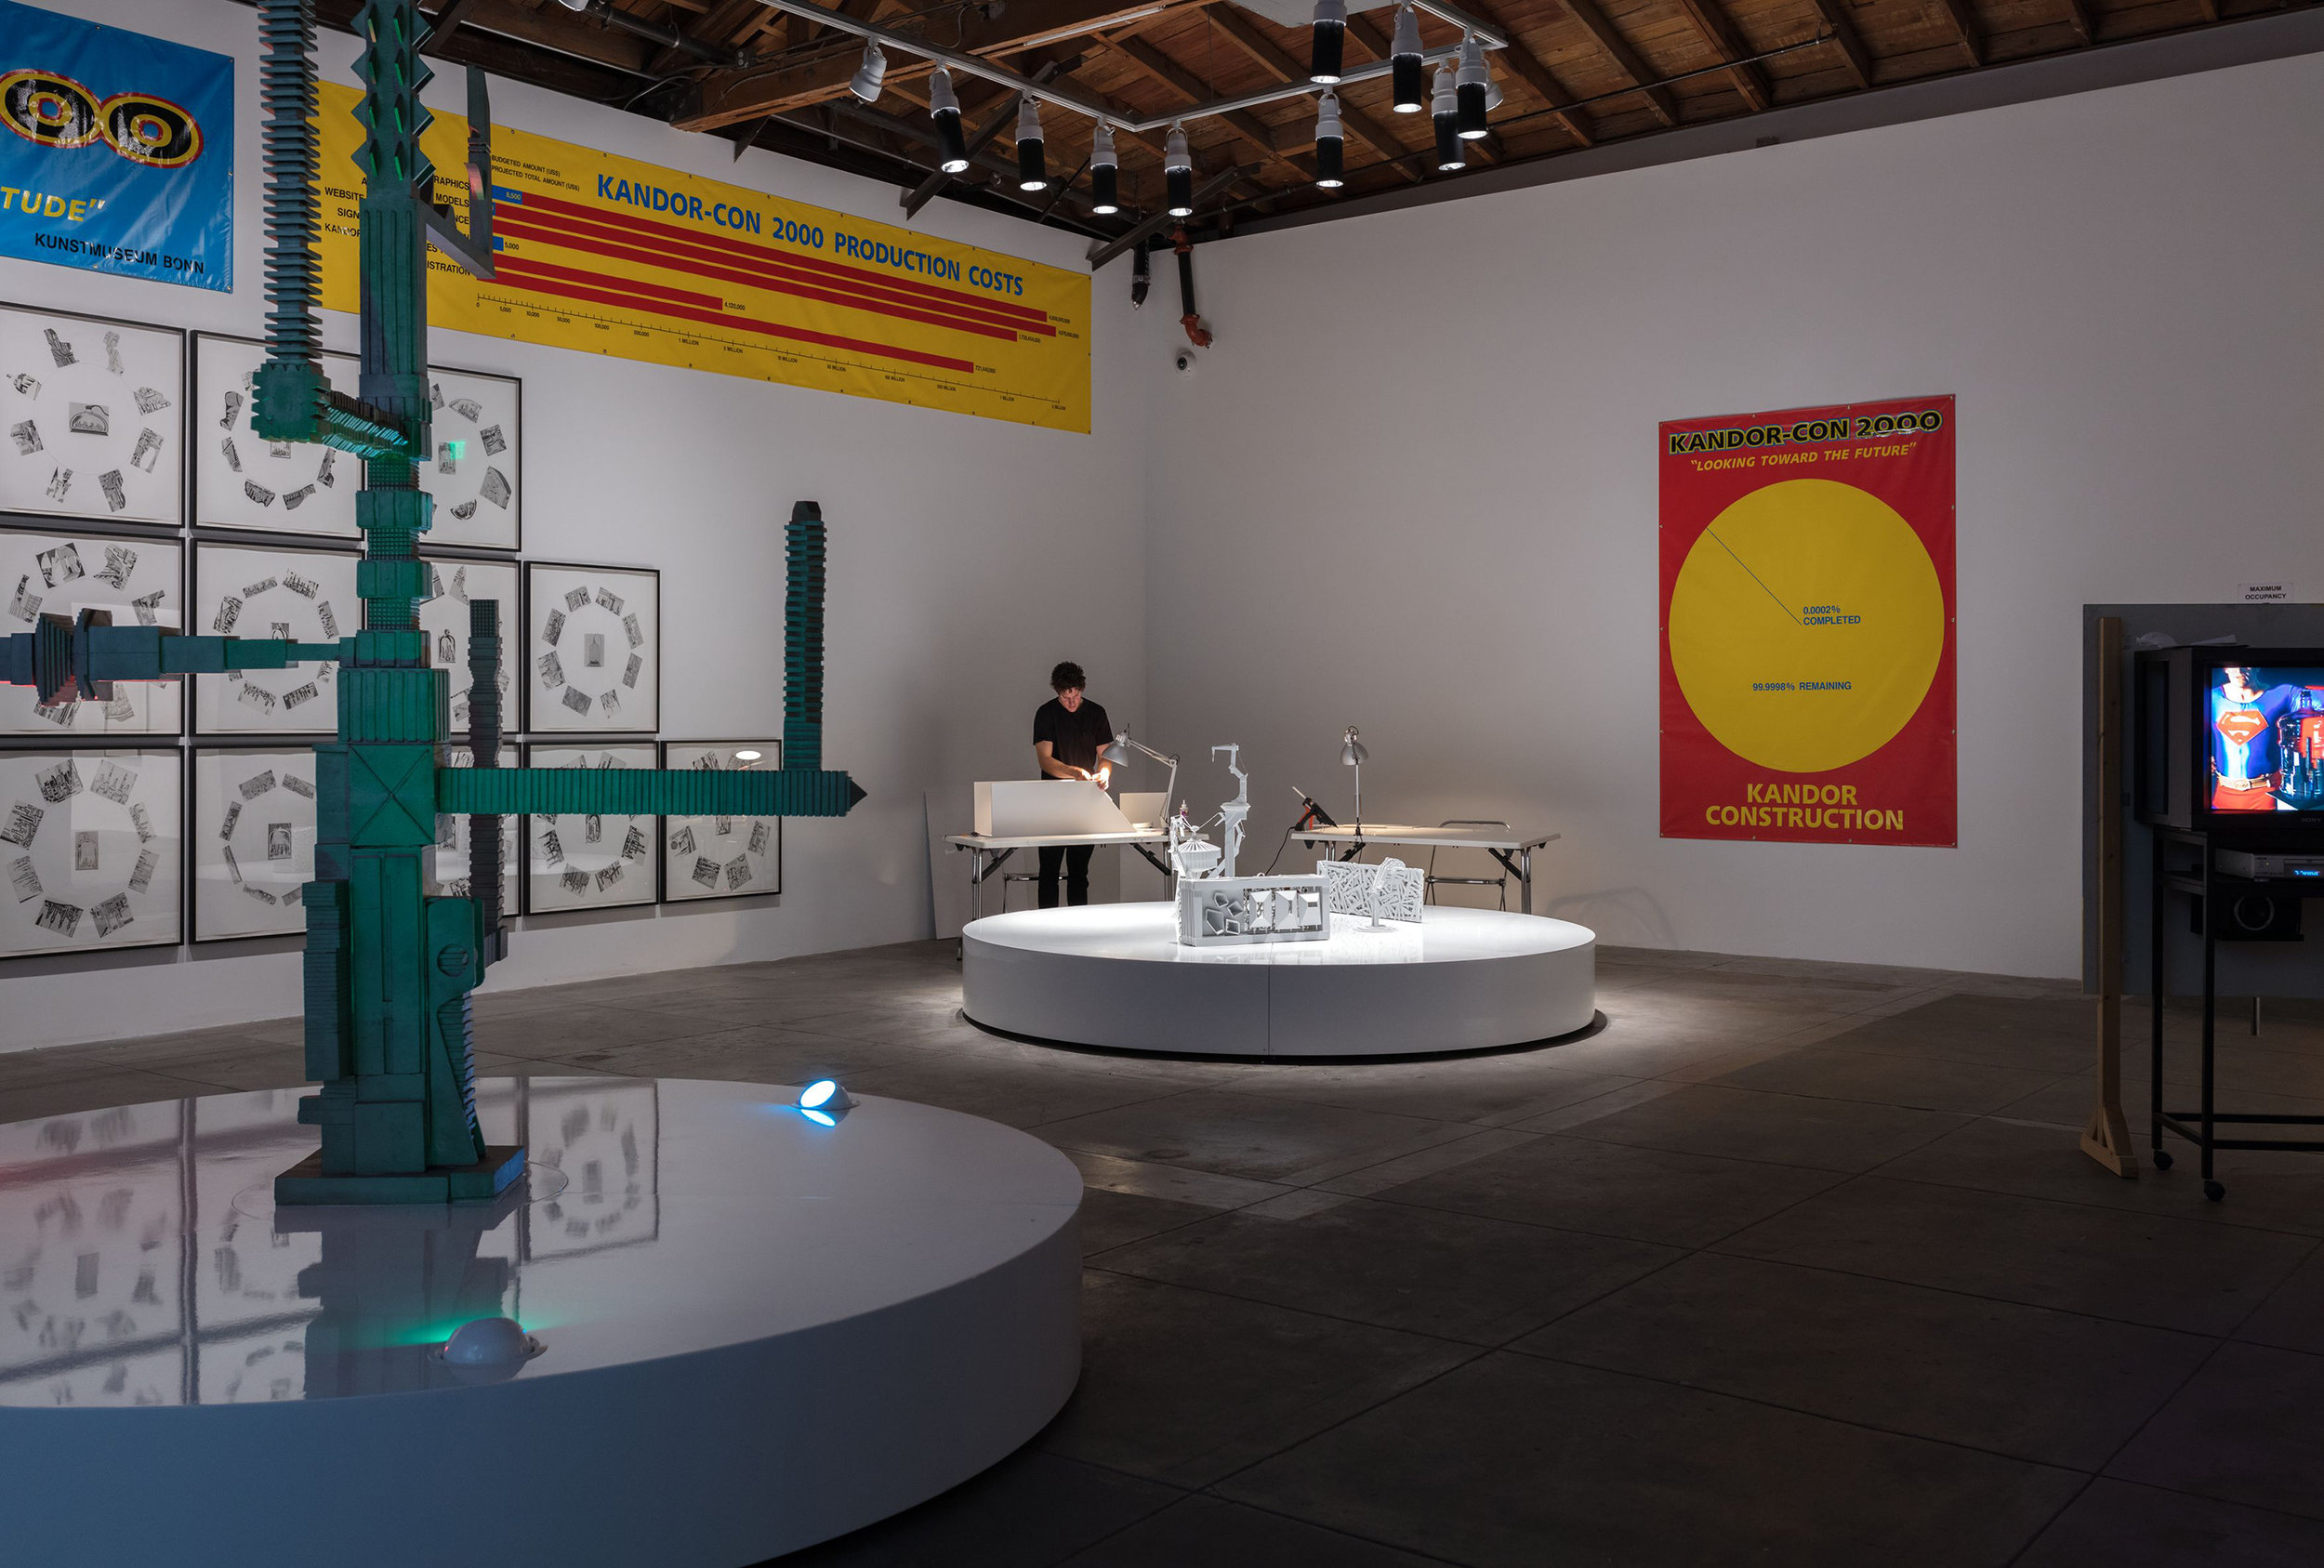 Mike Kelley. Kandor-Con 2000 1999/2007. Mixed media installation with video, sound. Dimensions variable. Installation view, 'Mike Kelley: Kandors 1999 –2011', Hauser & Wirth Los Angeles, 2017 Art © Mike Kelley Foundation for the Arts. All Rights Reserved / Licensed by VAGA, New York, NY. Deichtorhallen Hamburg / Falckenberg. Collection Courtesy the Mike Kelley Foundation for the Arts and Hauser & Wirth. Photo: Fredrik Nilsen